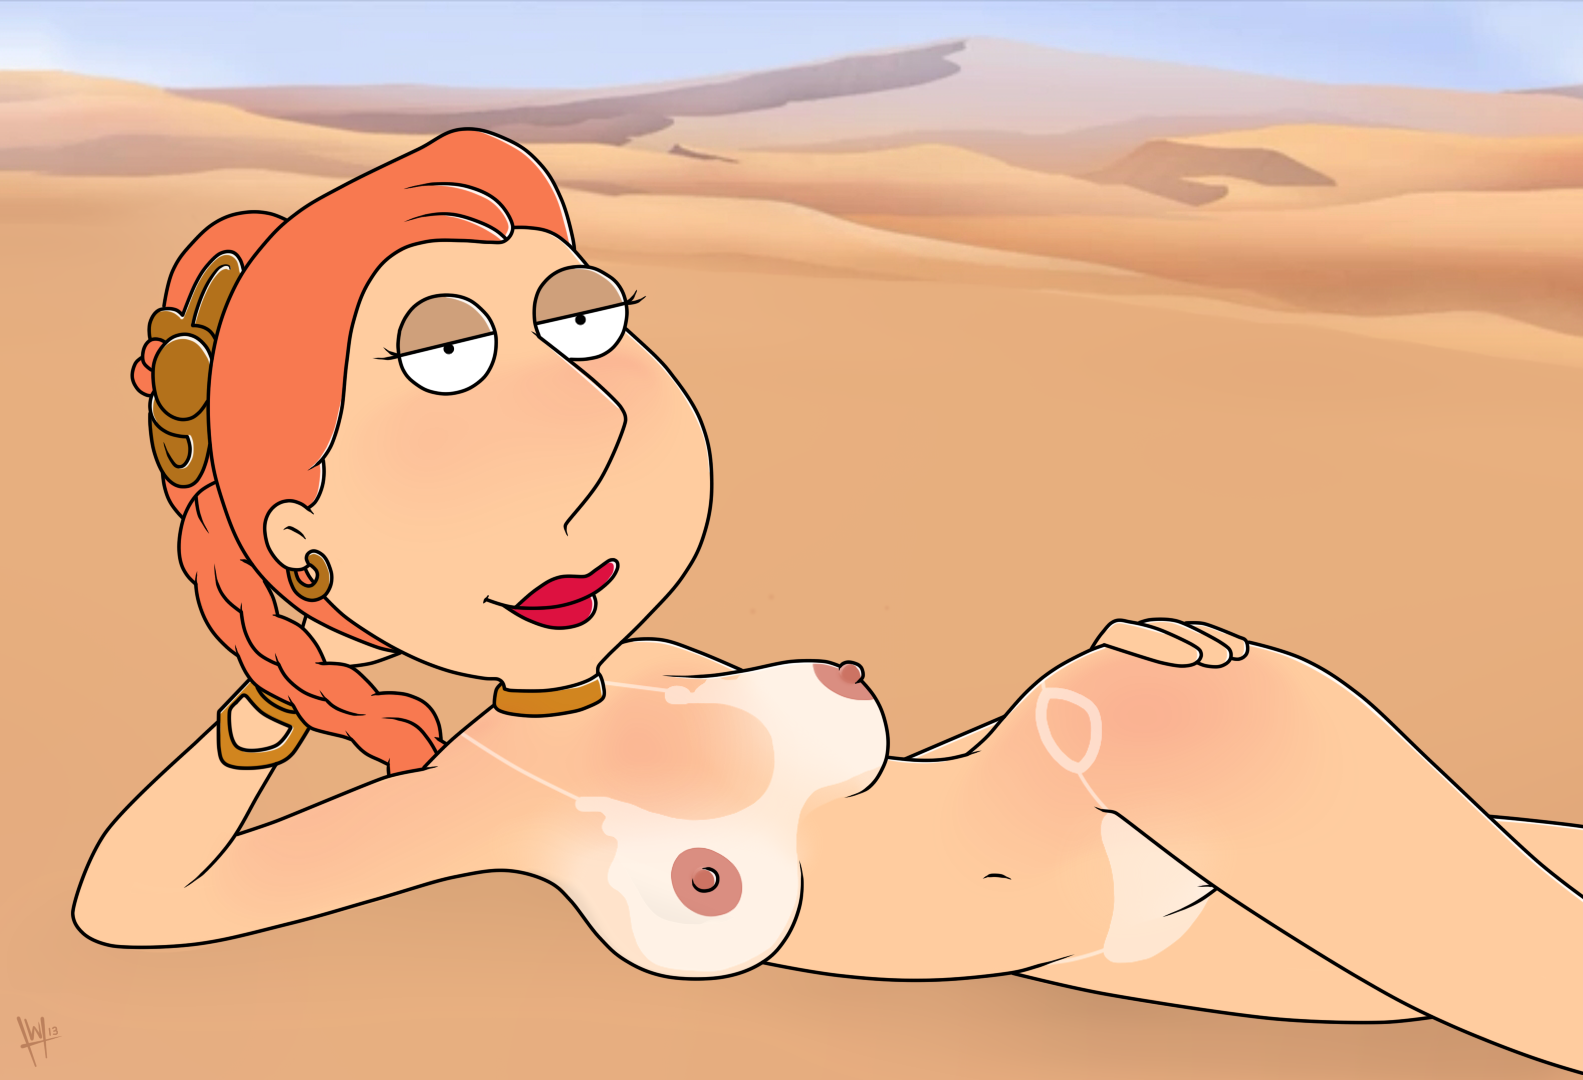 Lois Griffin nude pics are absolutely